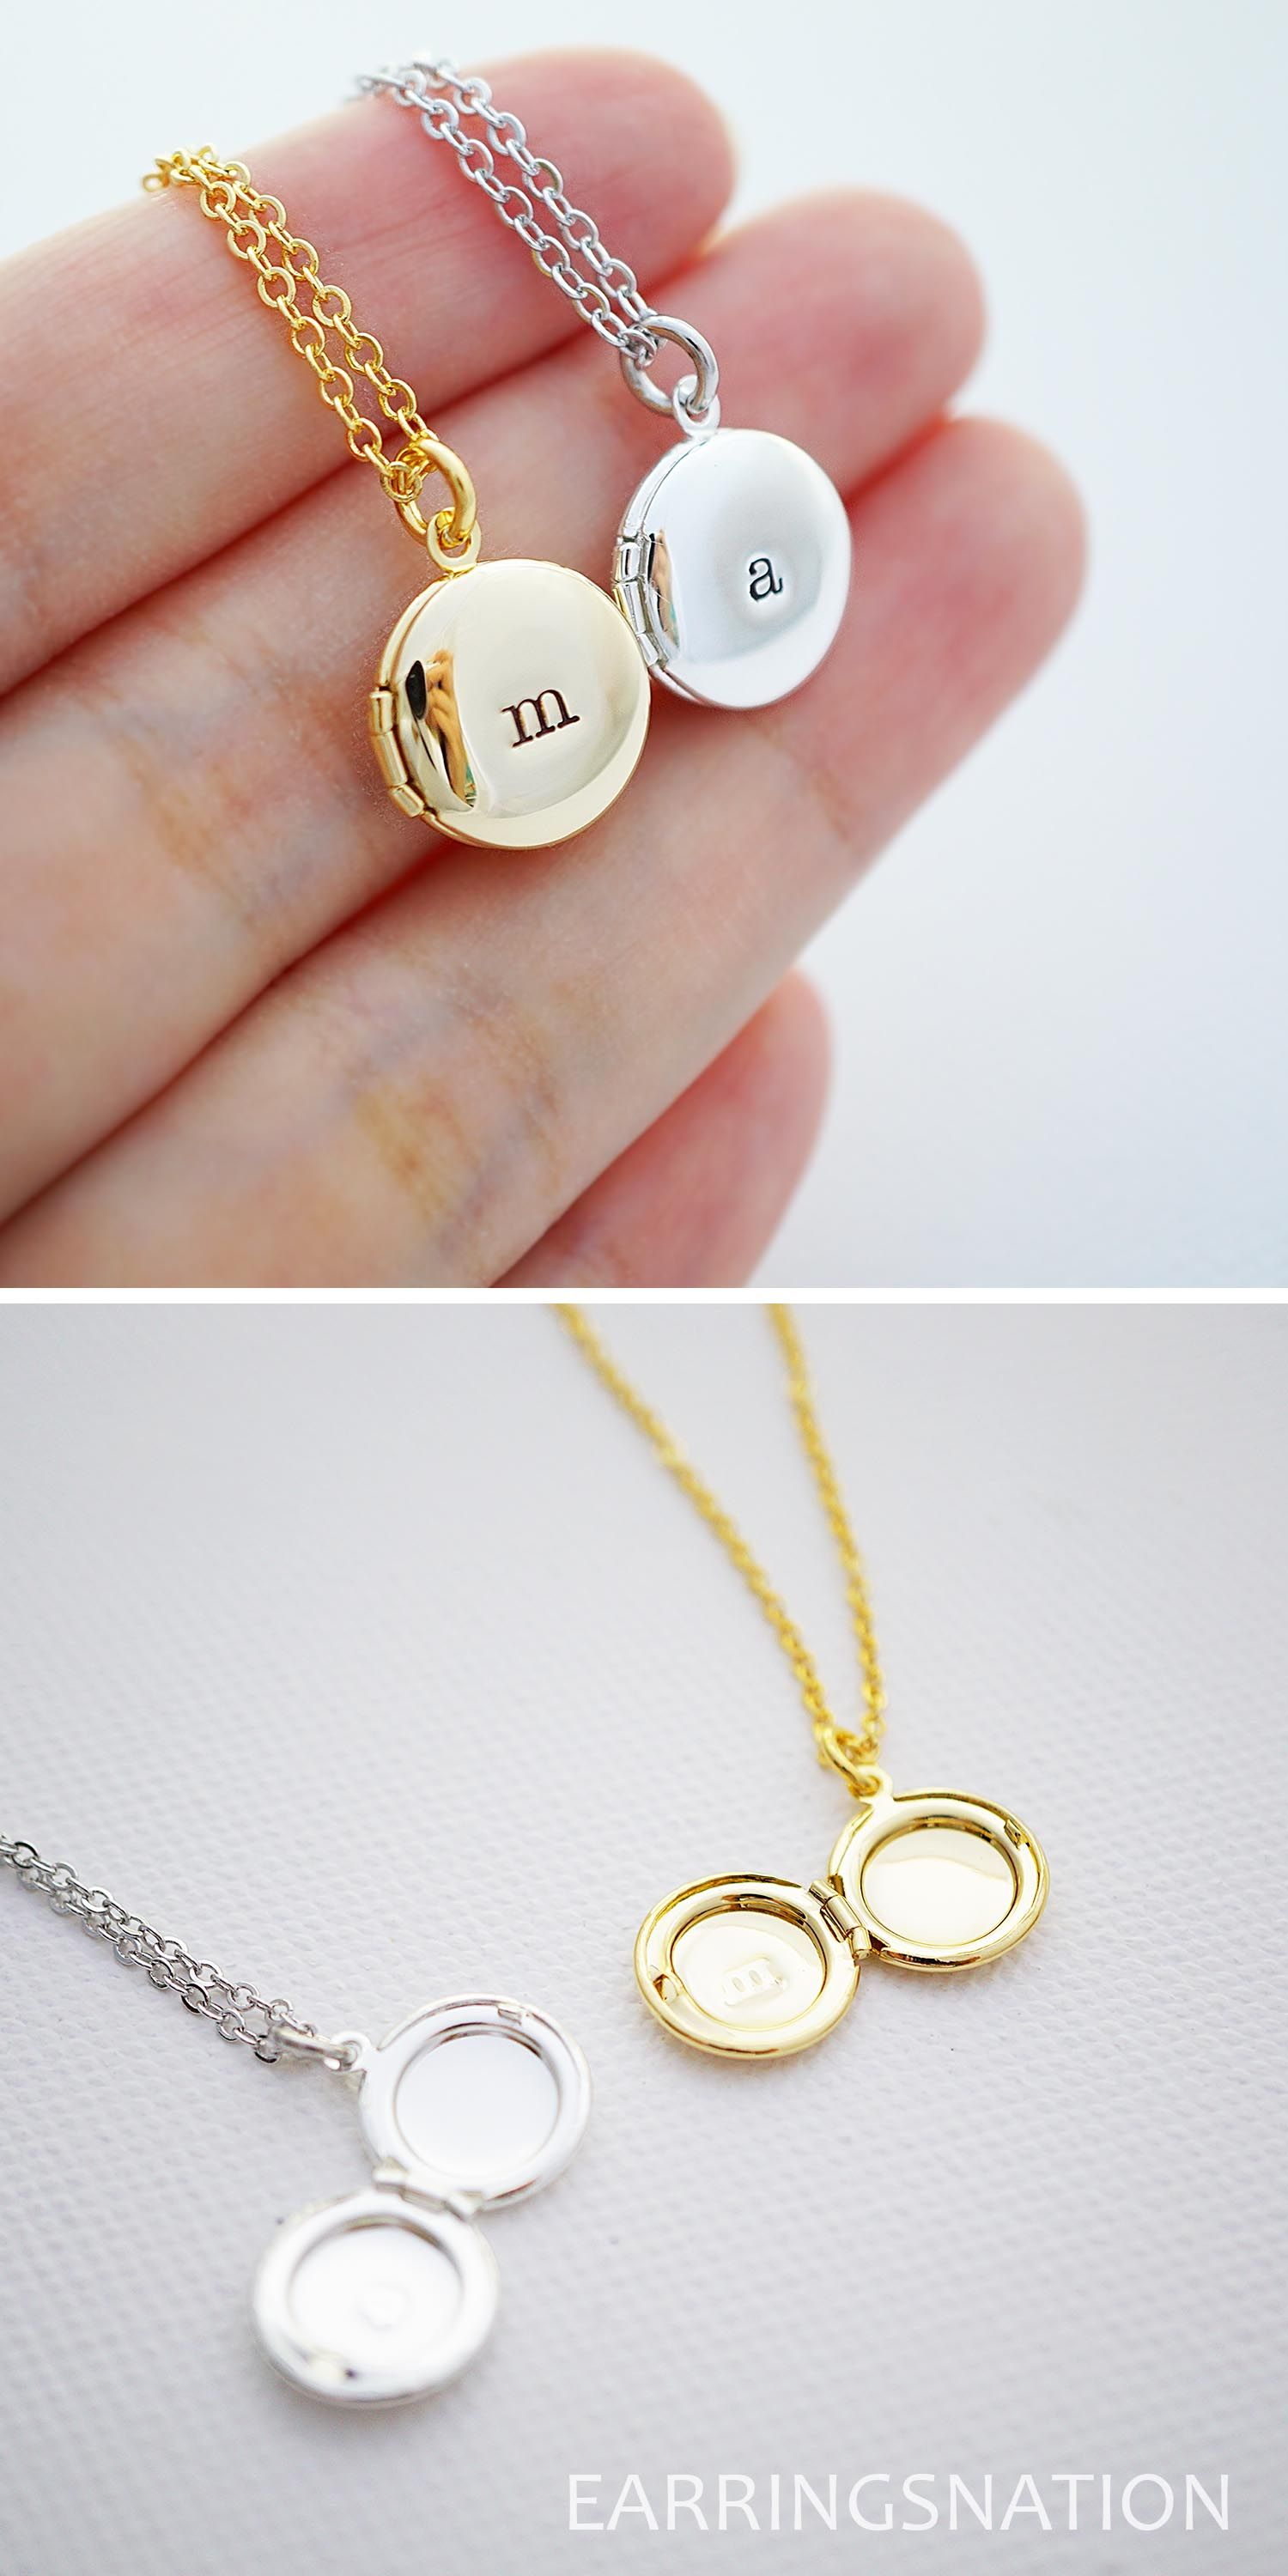 friendship love chain ball jewelry necklace silver pendants item message gold lockets necklaces locket in pendant secret from handmade promise